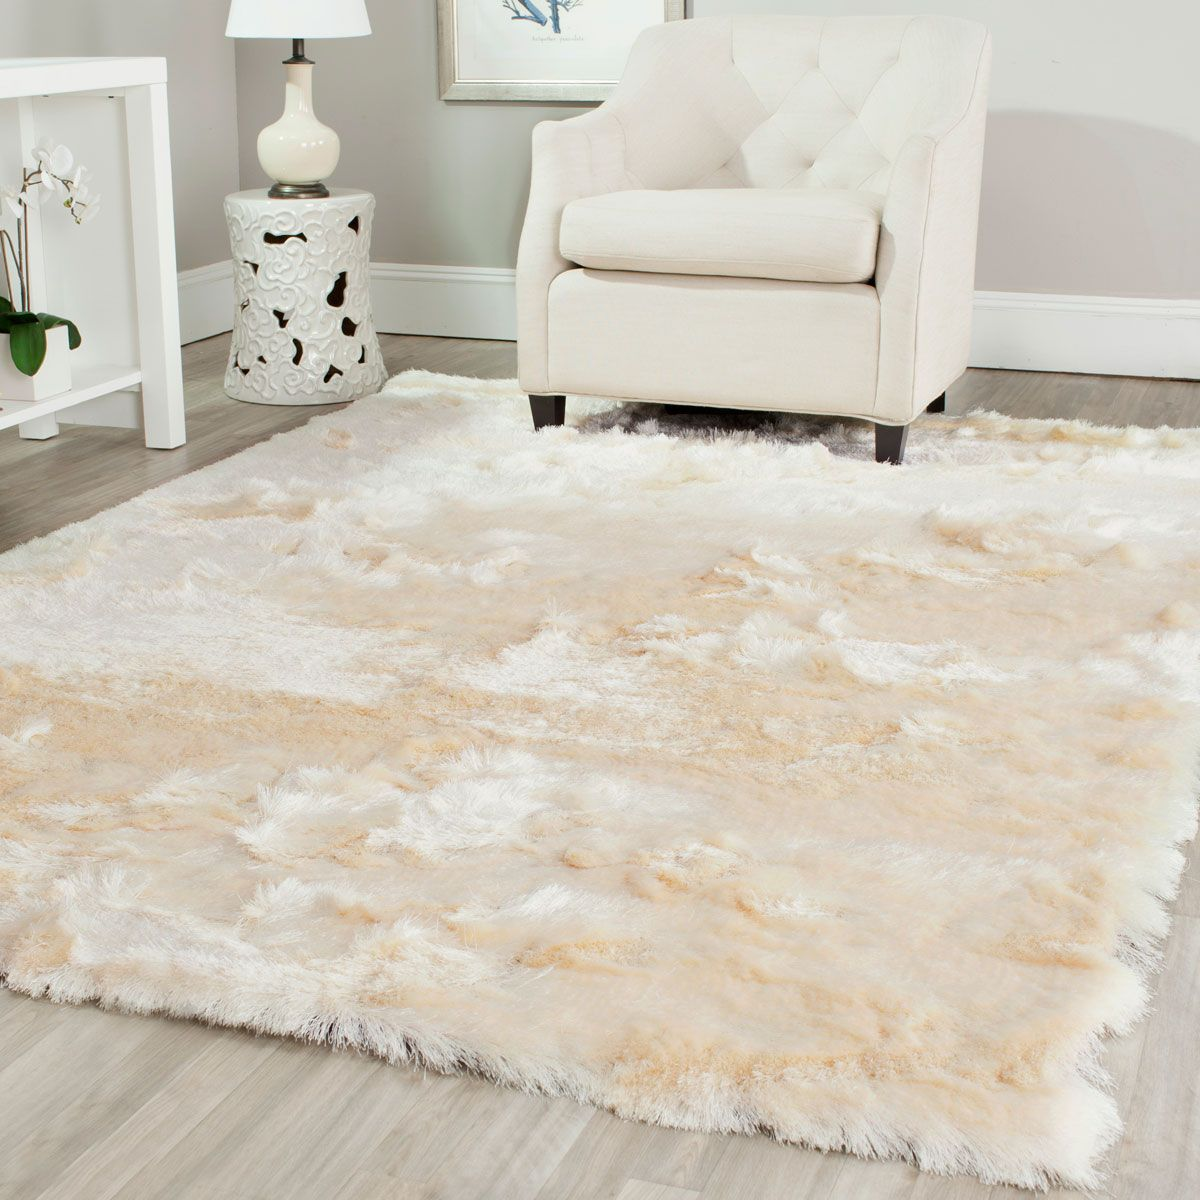 White Lush Pile Shag Paris Collection Safavieh Com Cool Rugs Polyester Rugs Family Room Decorating